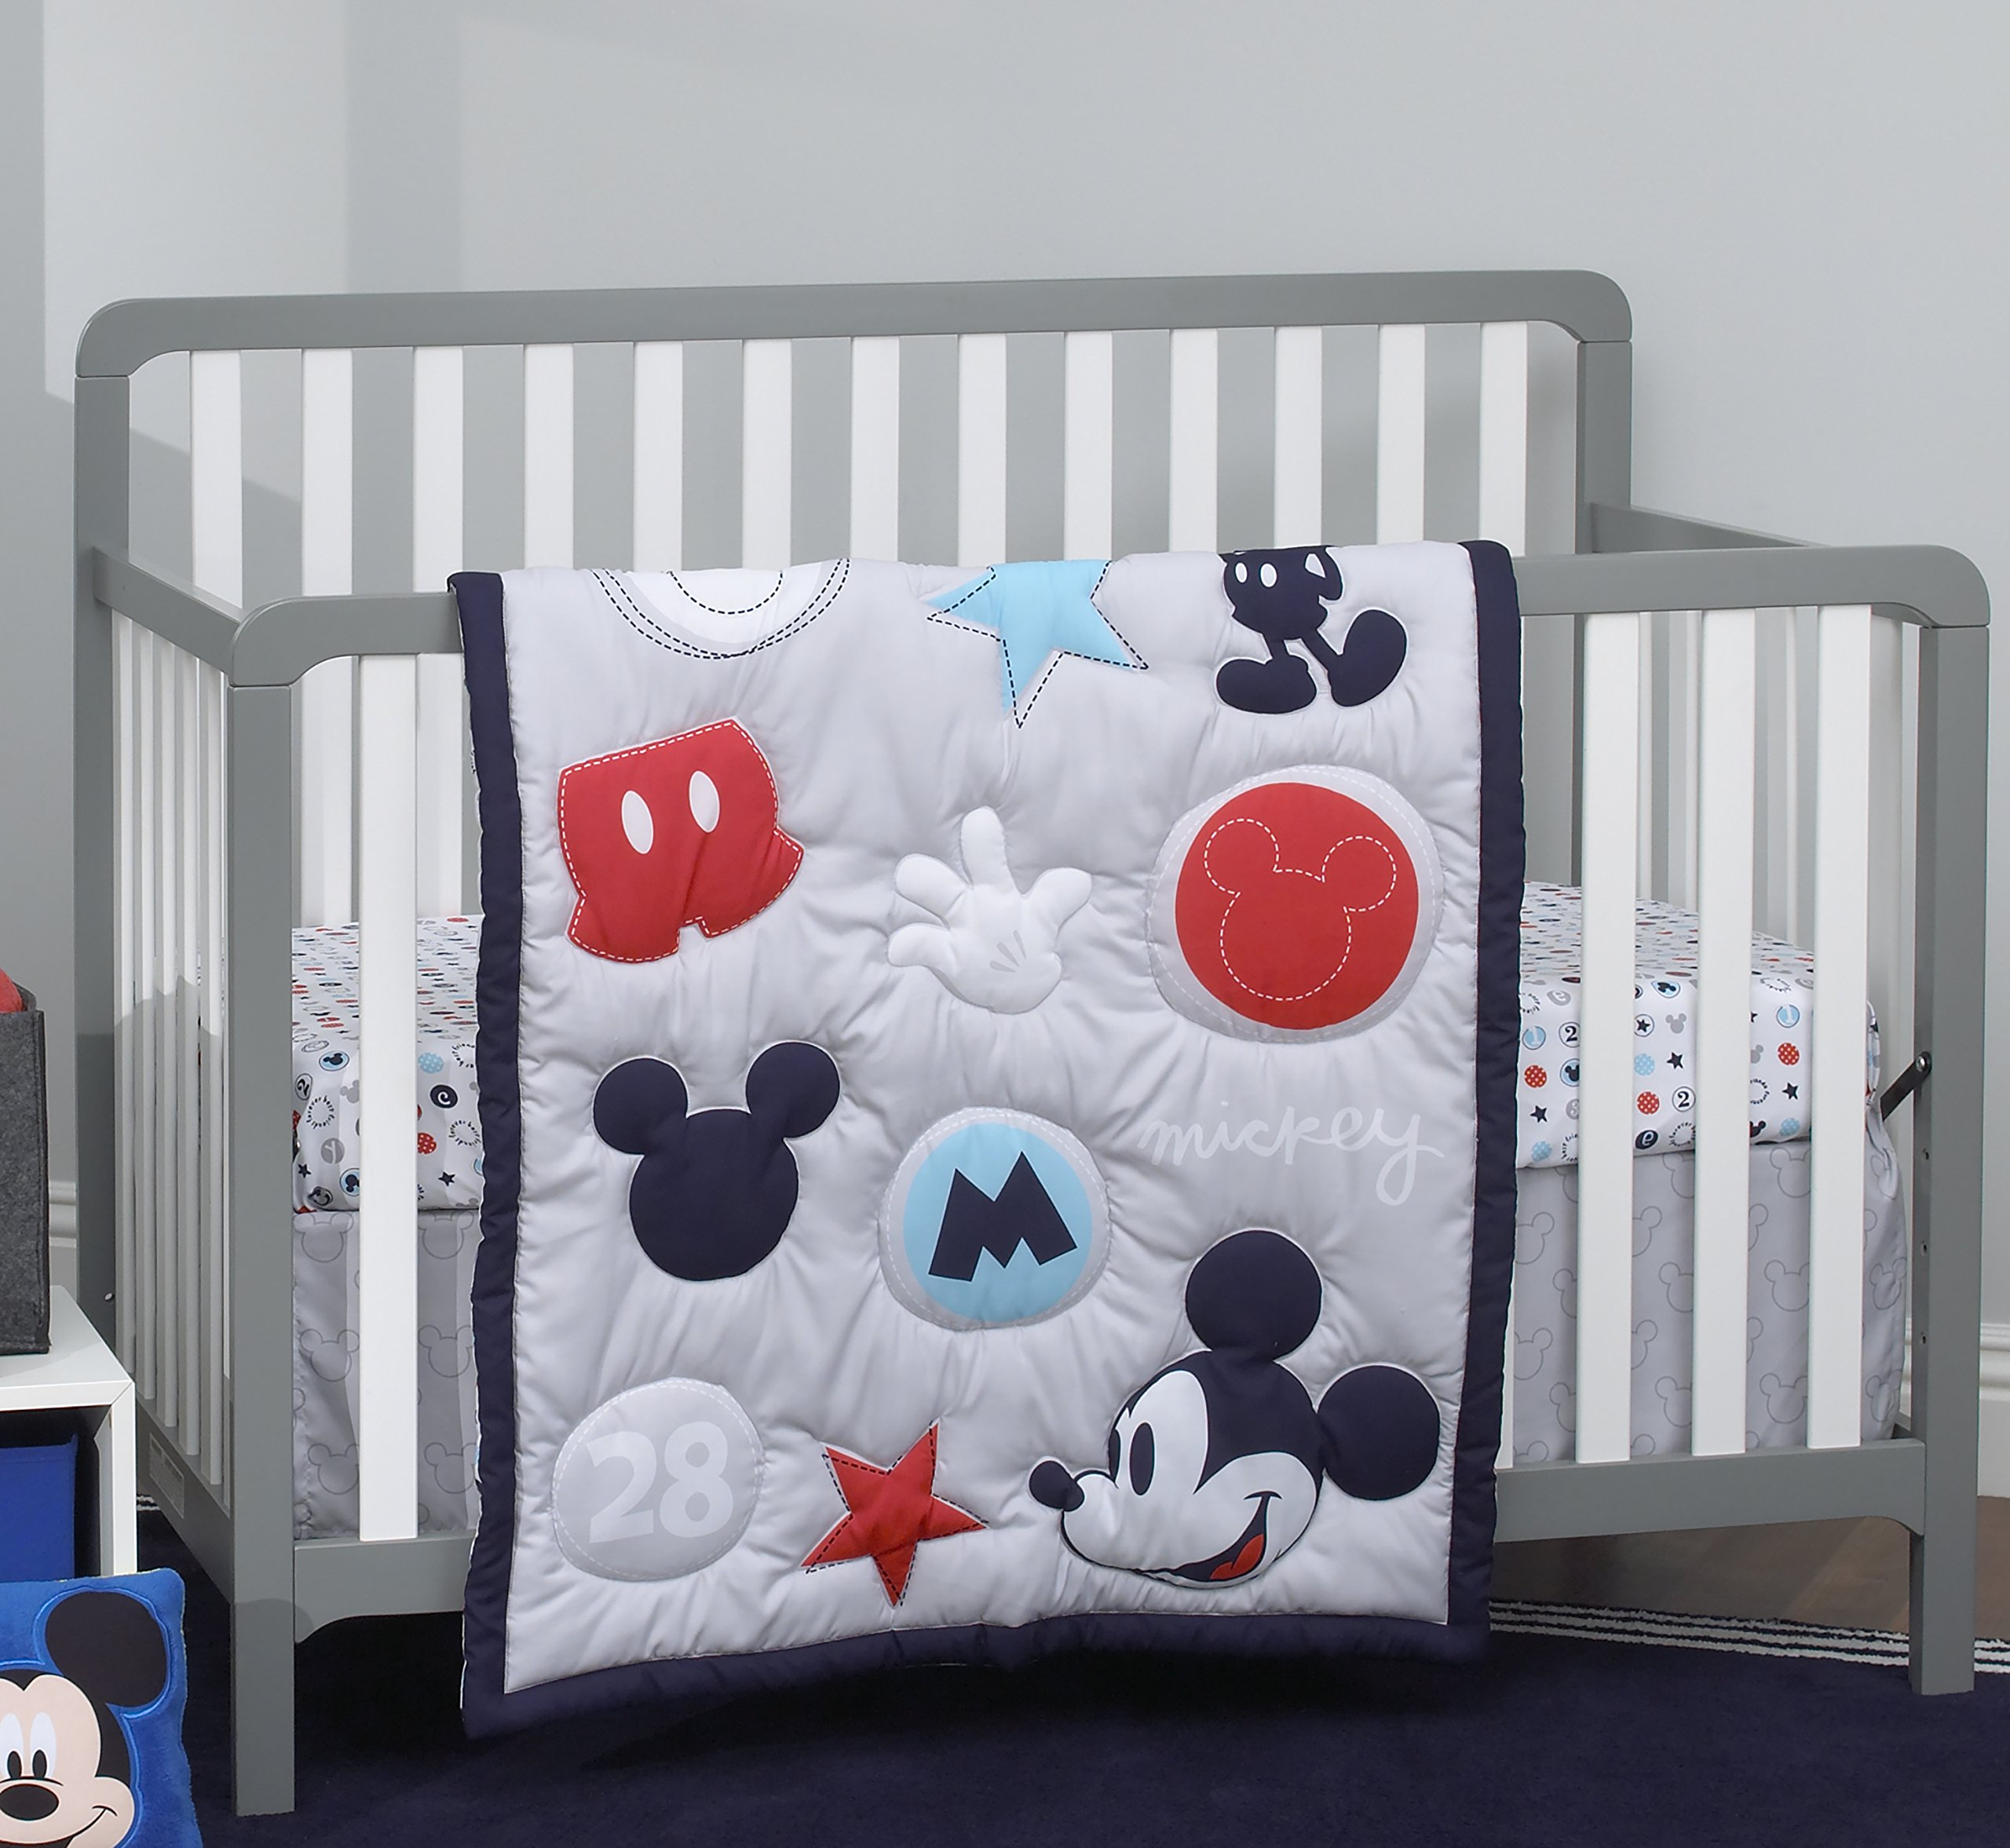 Disney Amazing Mickey Mouse 3 Piece Nursery Crib Bedding Set, Grey, Navy, Red, Blue by Disney